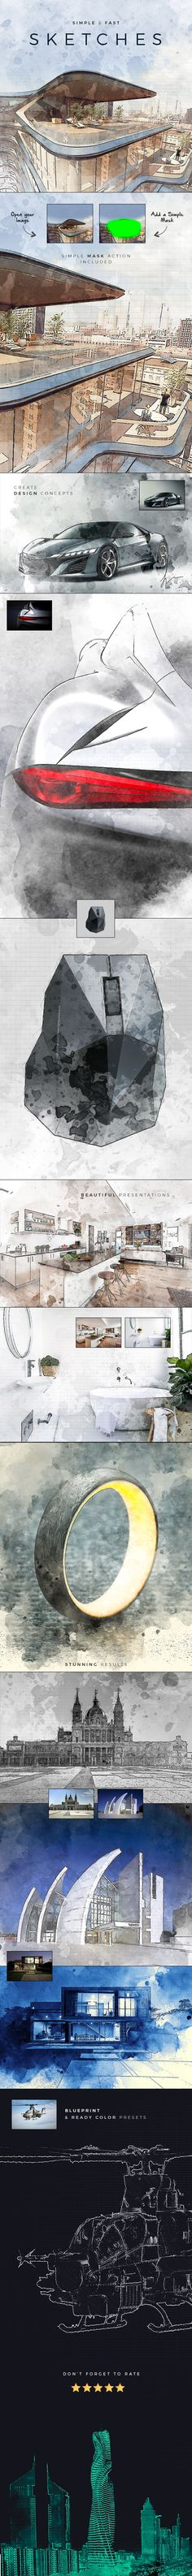 Sketches & Concepts | Creative Professional Effect — Photoshop ATN #blueprint #sketch • Download ➝ https://graphicriver.net/item/sketches-concepts-creative-professional-effect/21439940?ref=pxcr